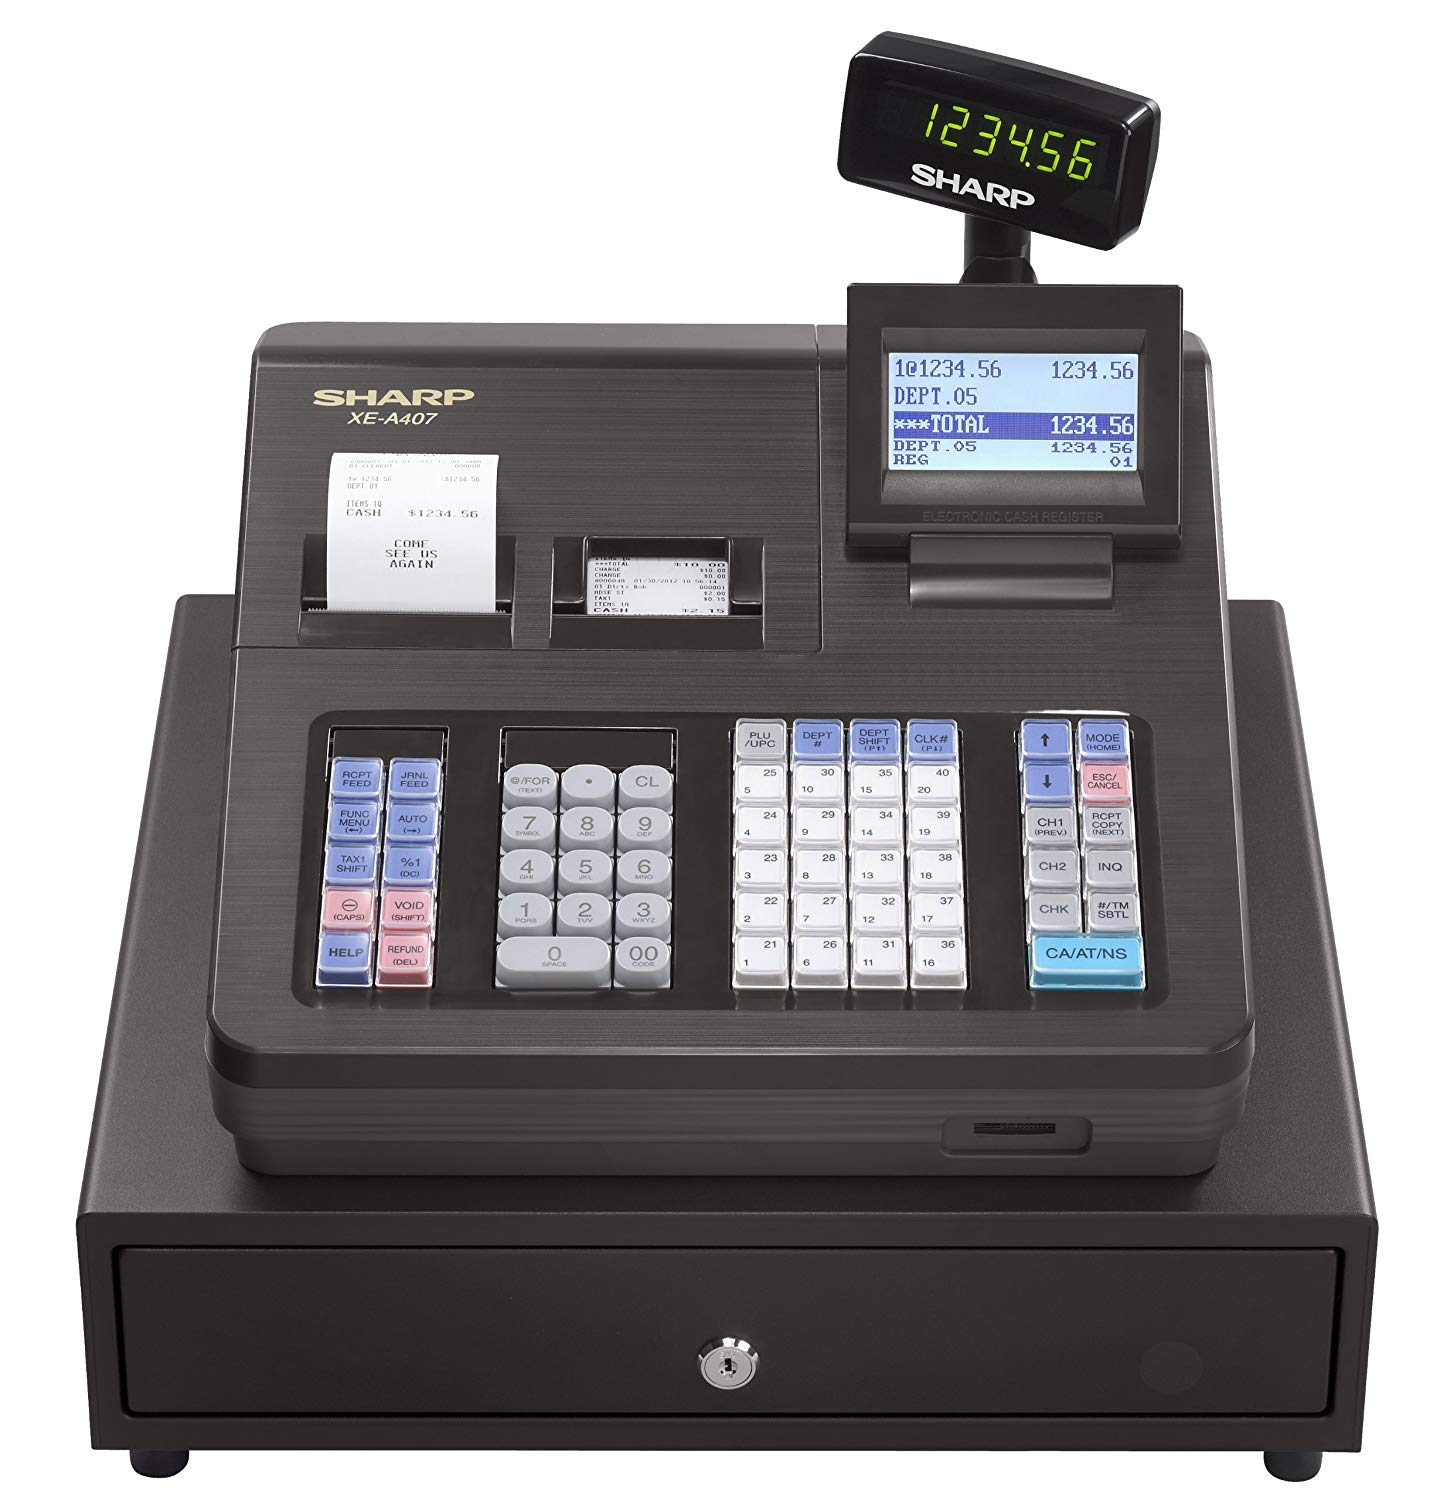 Best Cash Registers For Small Retail Business 2020